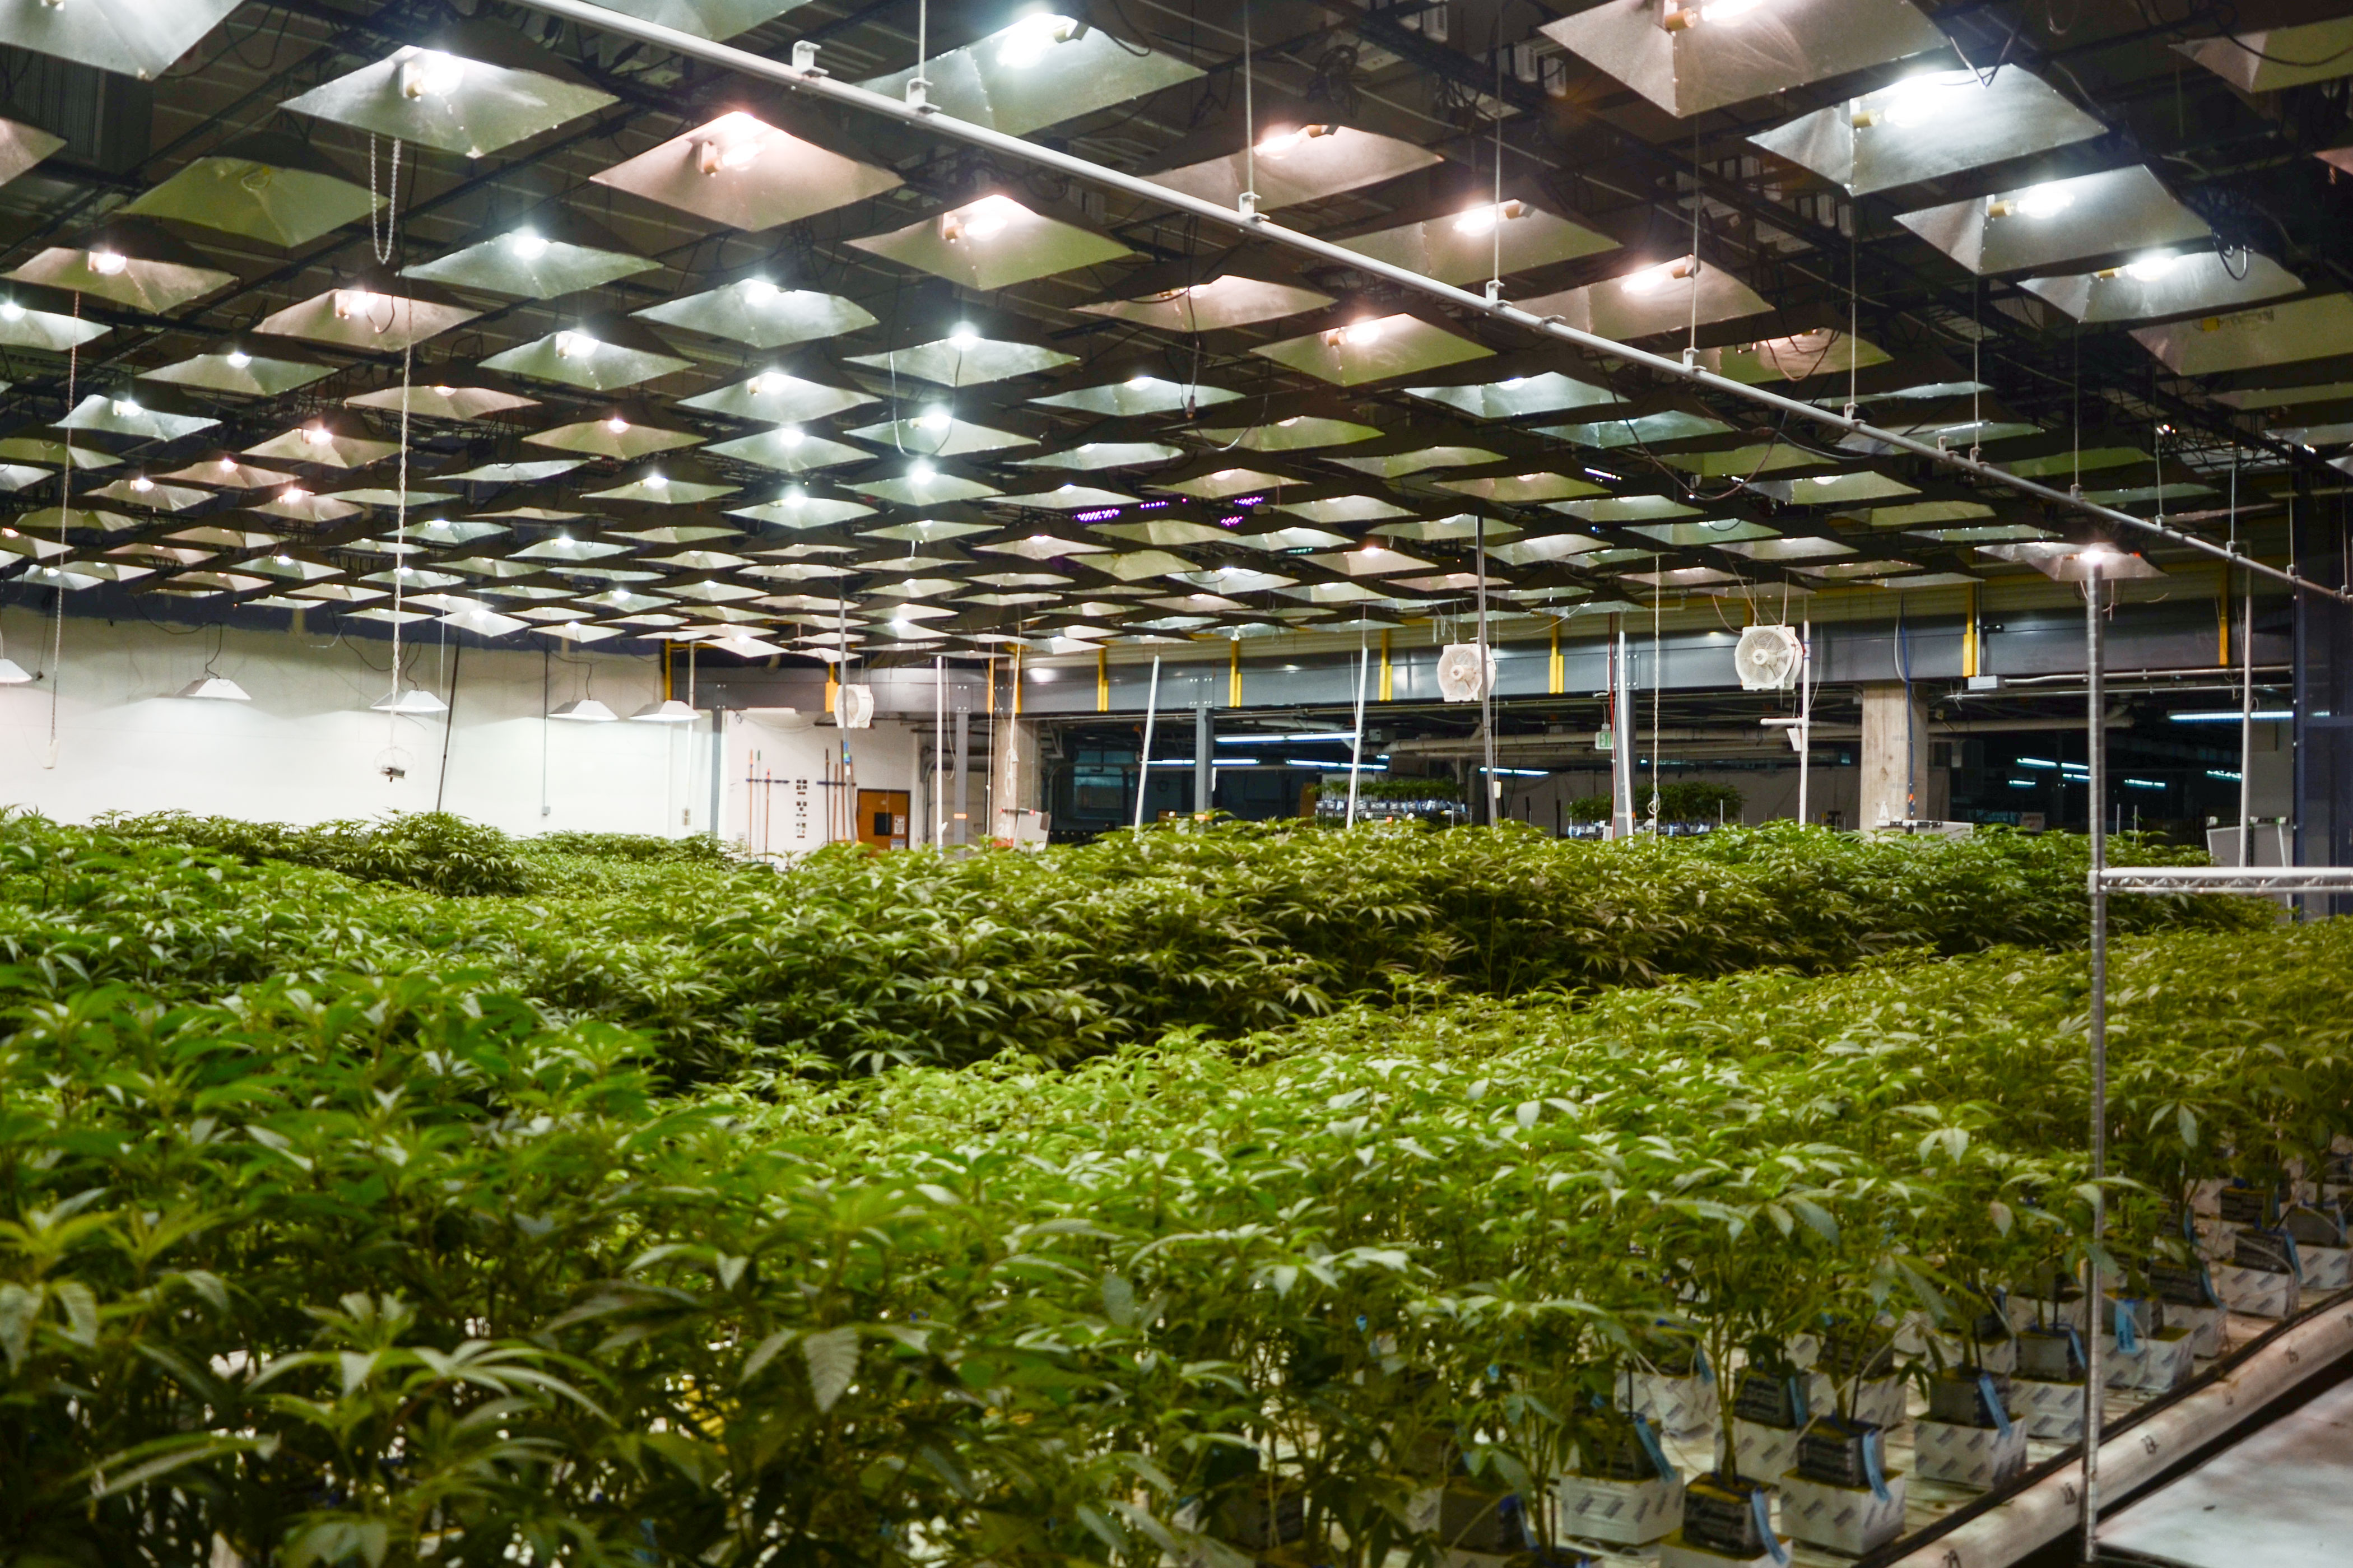 <p>Marijuana grow facilities, such as this one owned by LivWell Enlightened Health, are common employers around Denver, Colo.</p>